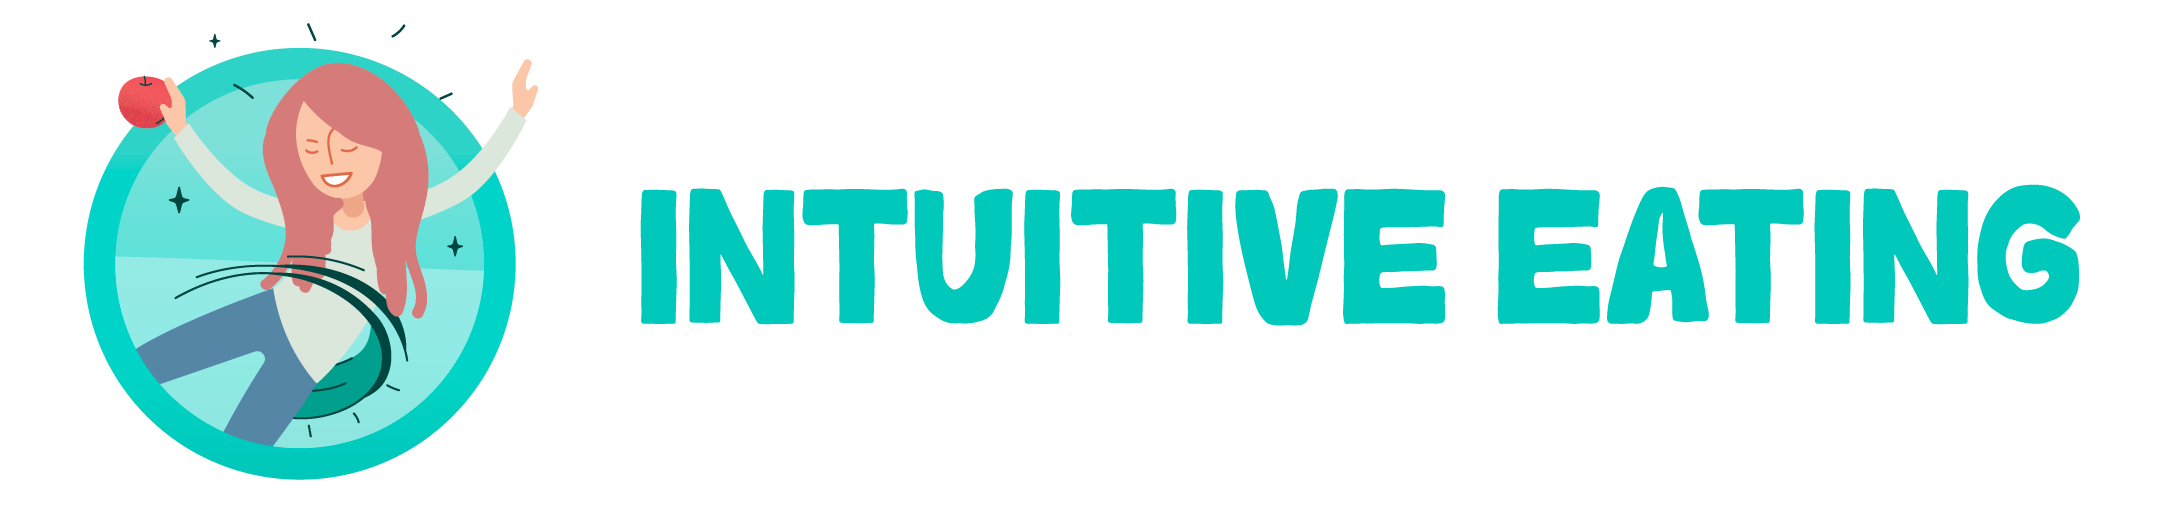 30 Days of Intuitive Eating